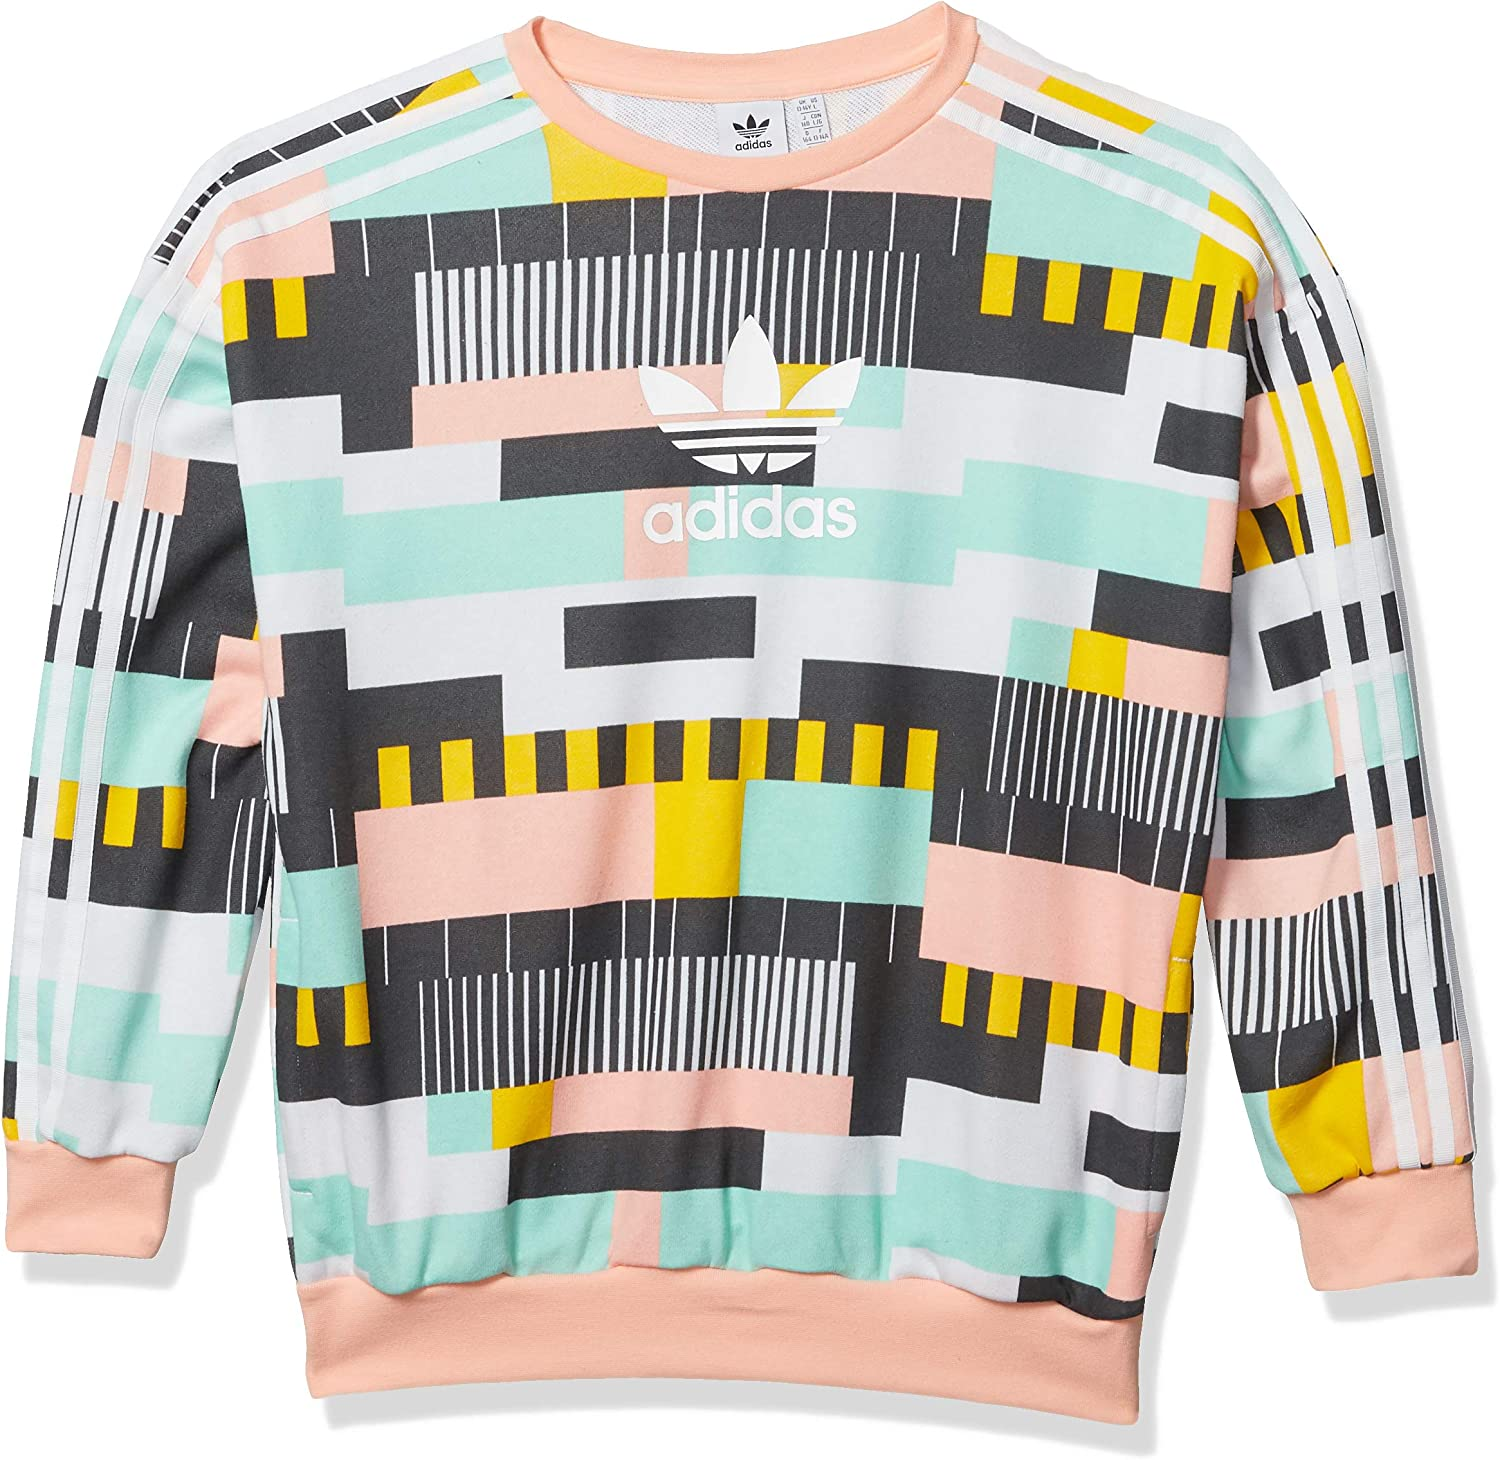 adidas Originals Kids' Big Juniors Crewneck Sweatshirt